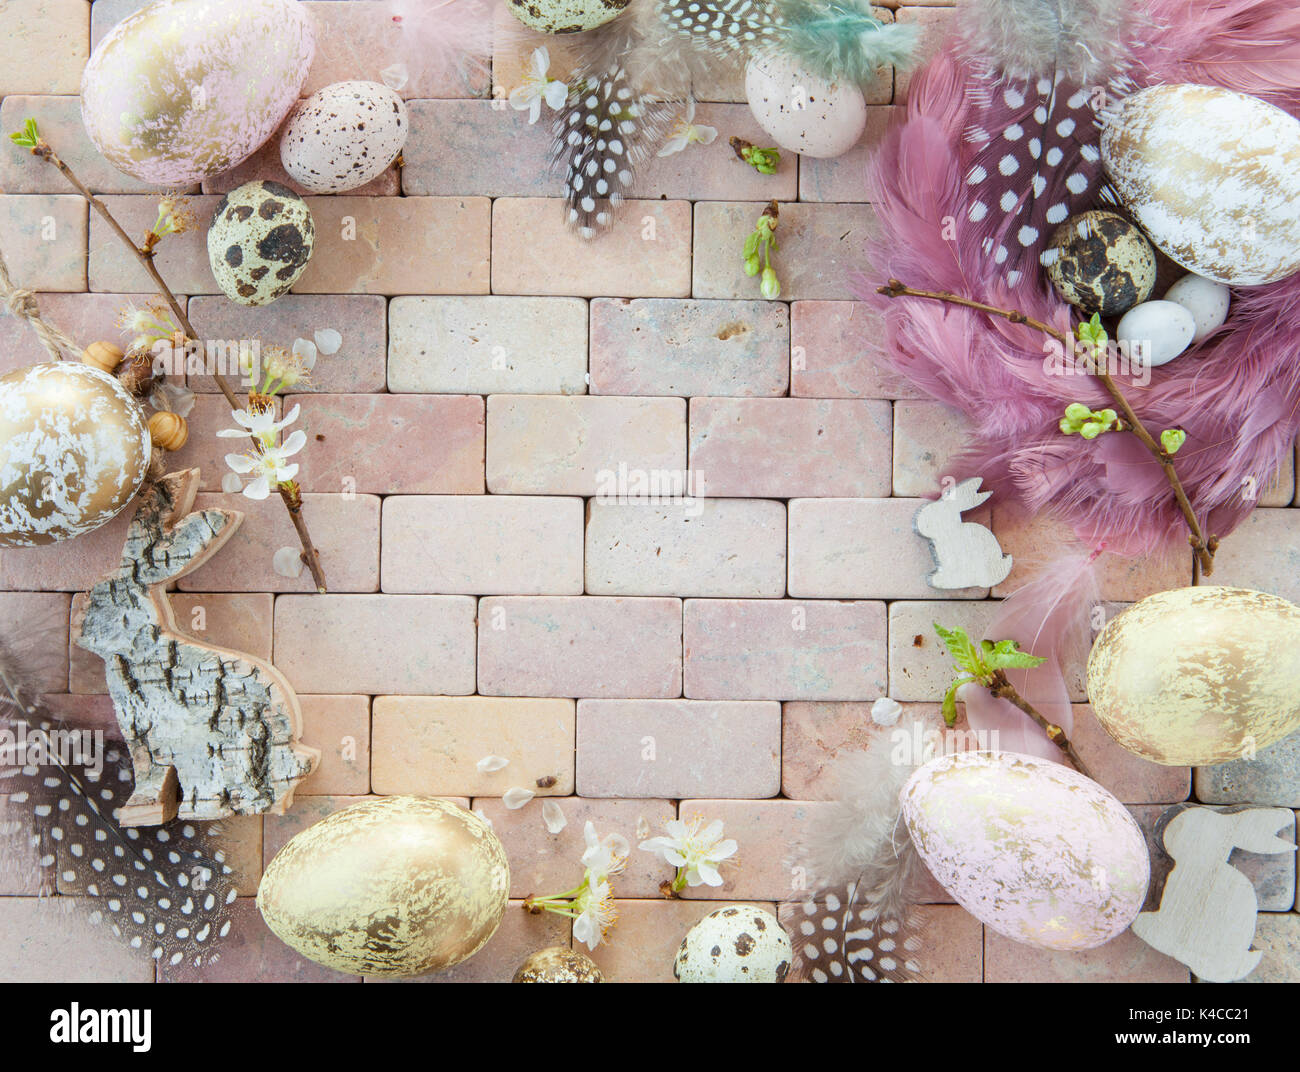 Colorful Easter Decorations - Stock Image